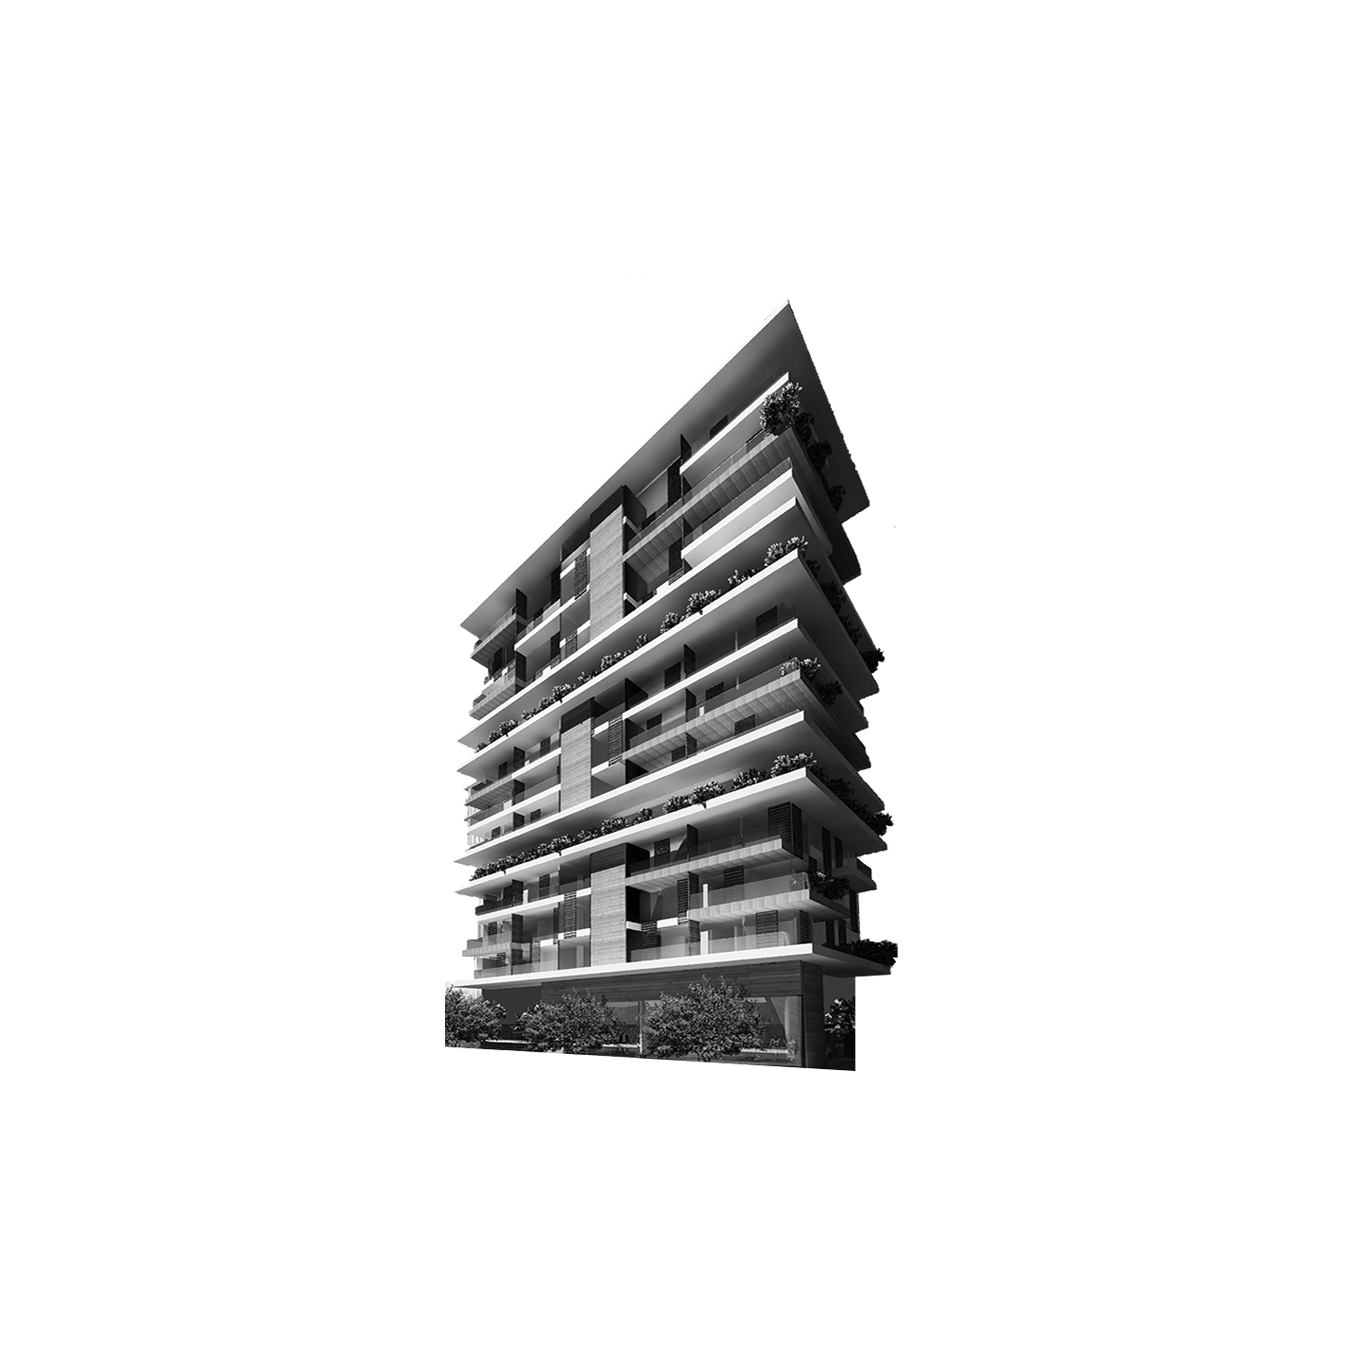 24.EDIFICIO RESIDENCIAL ONE LIVING web